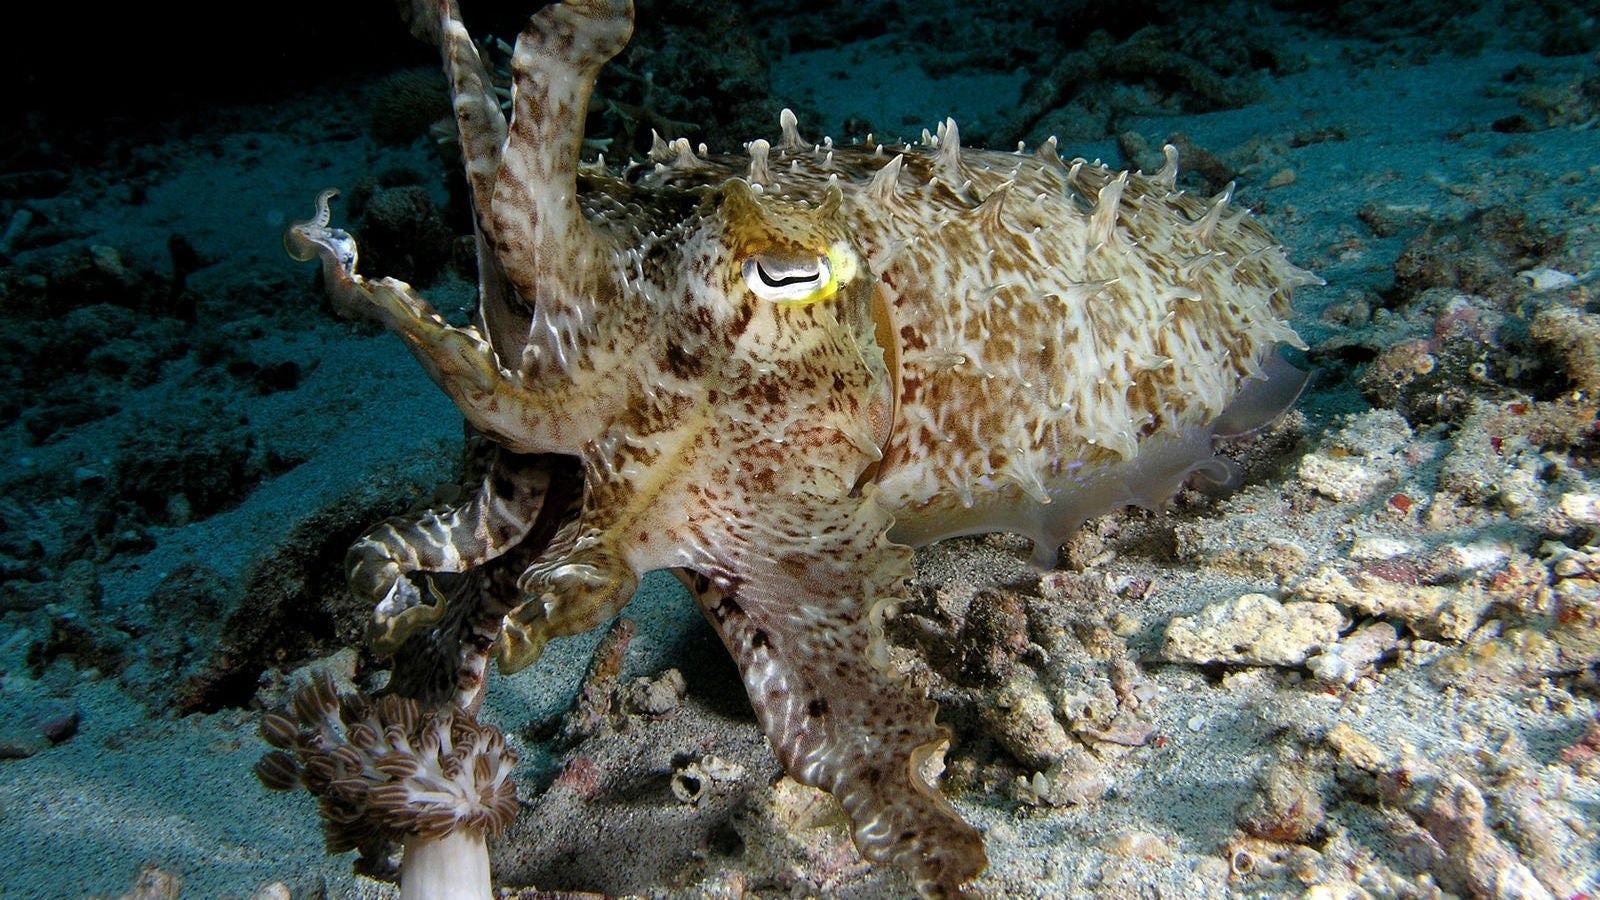 Secrets Of The Cuttlefish's Uncanny Camouflage Abilities Revealed